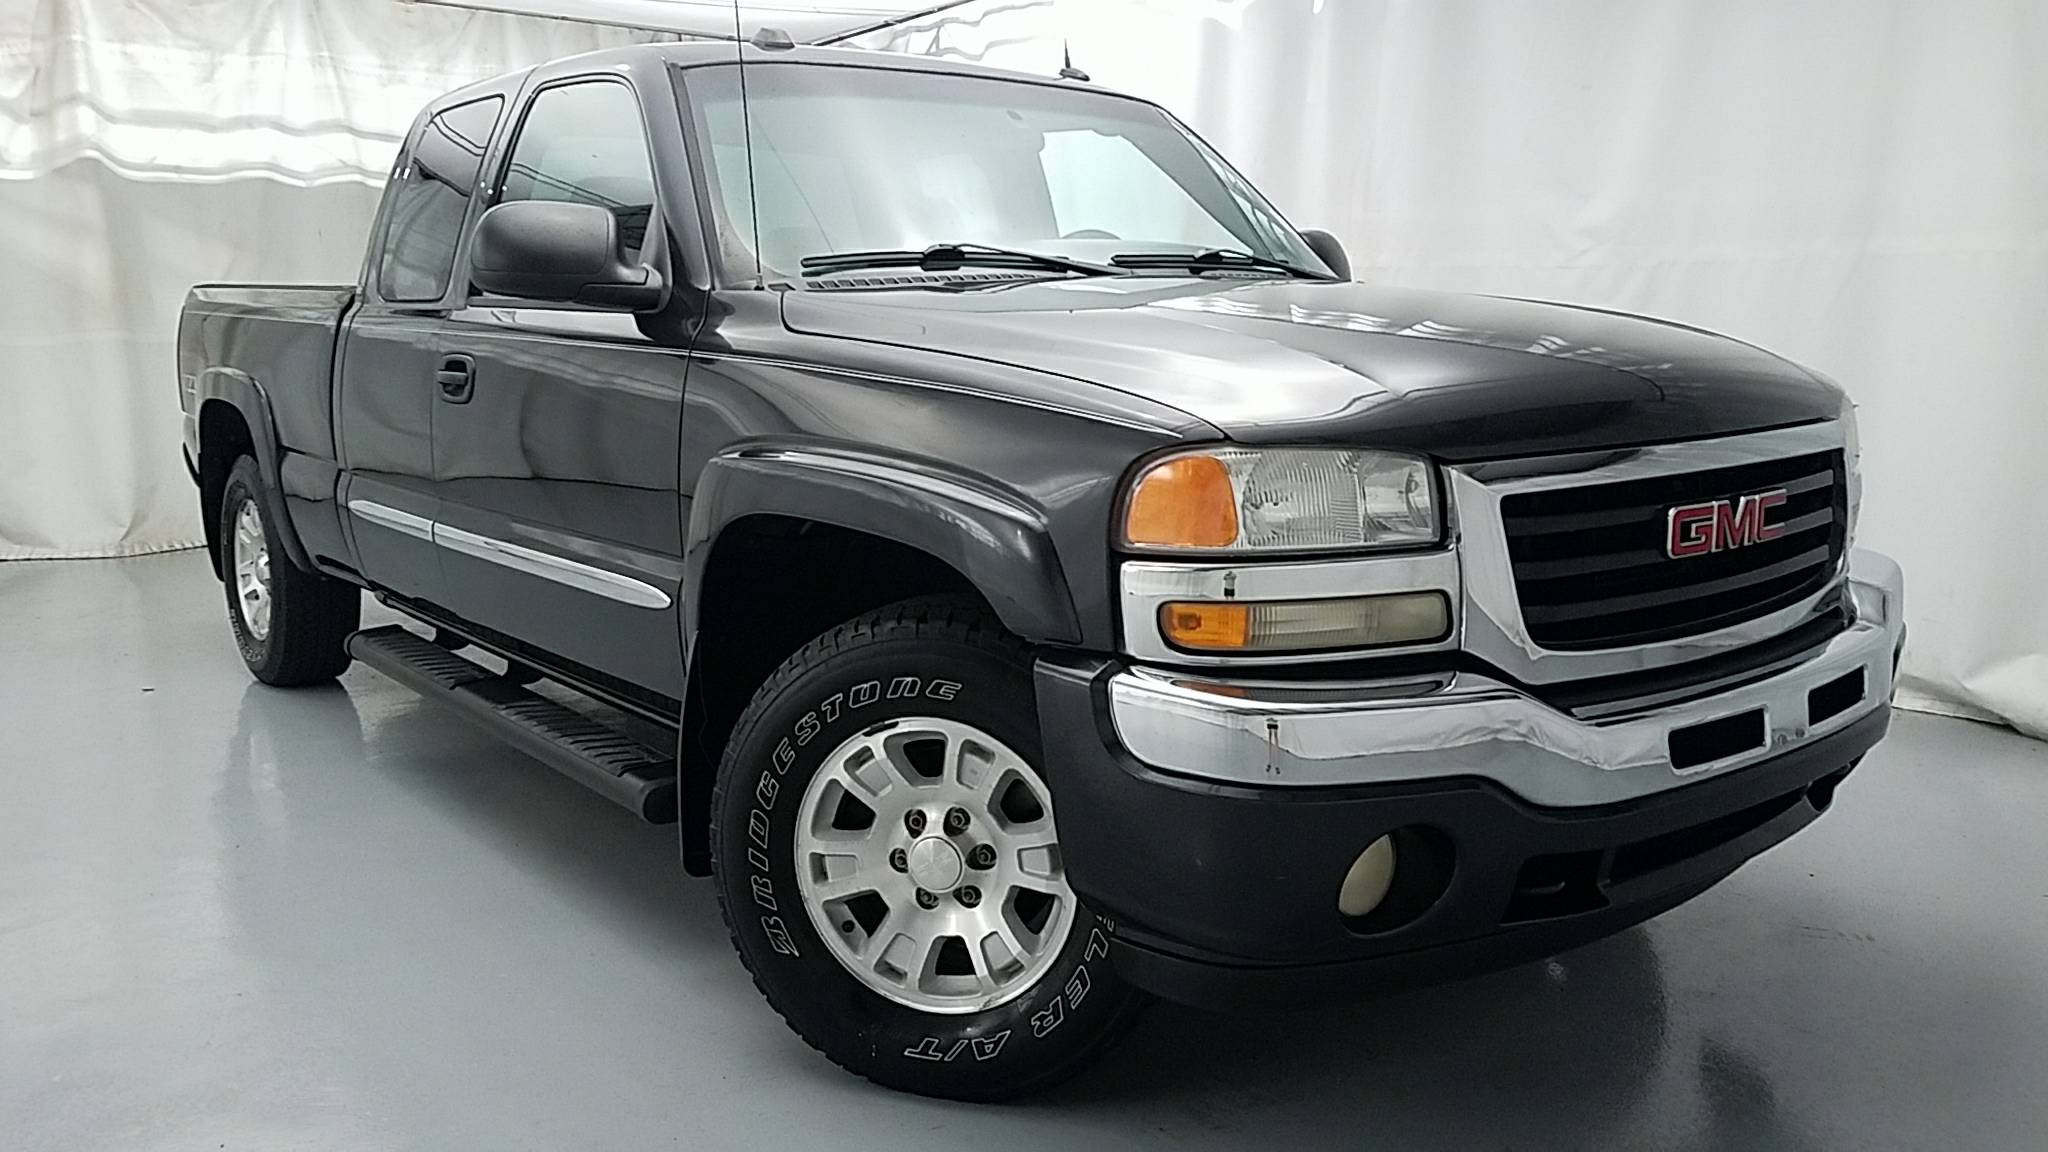 used new news u sierra seattle in sale gmc s for world awesome wa trucks pickup